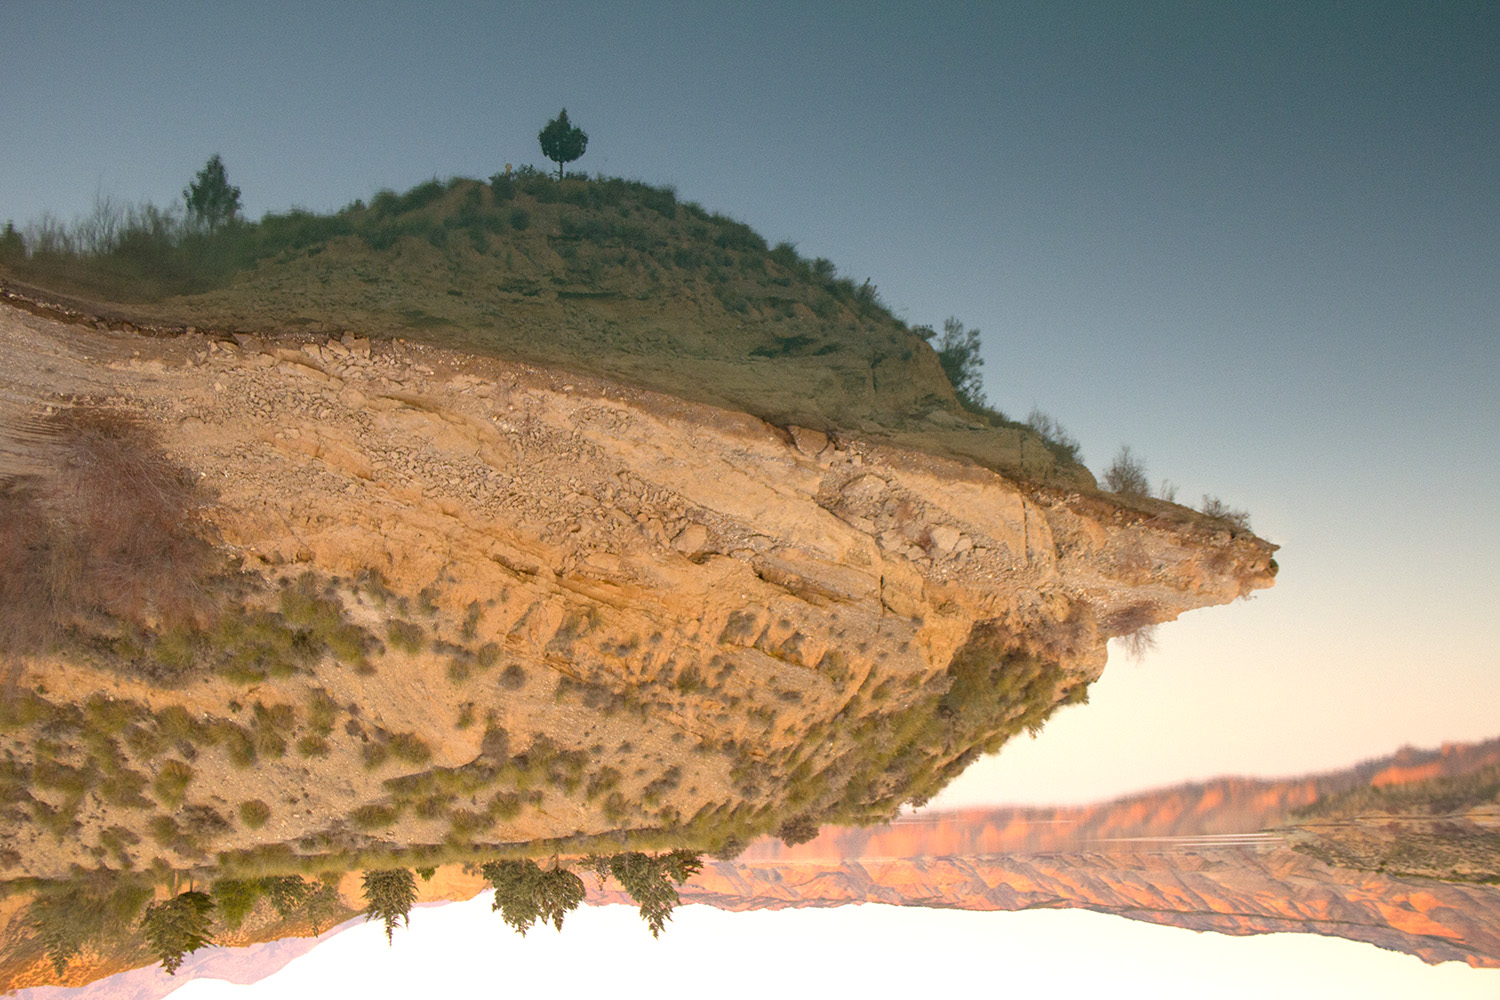 """Flying Land"" - Embalse Negratin, Granada - L02089"